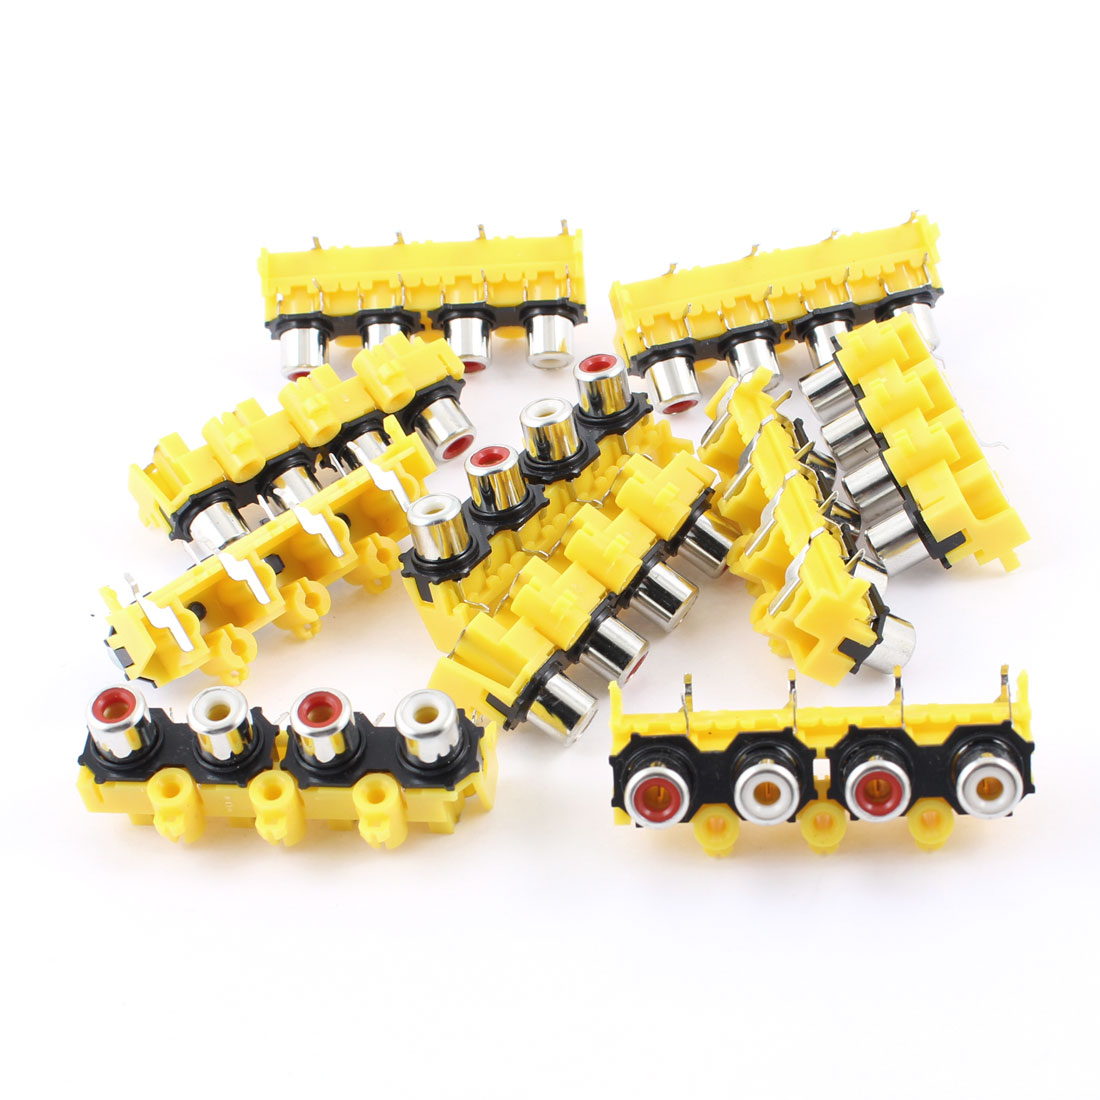 10 Pcs Audio Video AC Concentric RCA Socket 4 Female Jack Connector Yellow Black